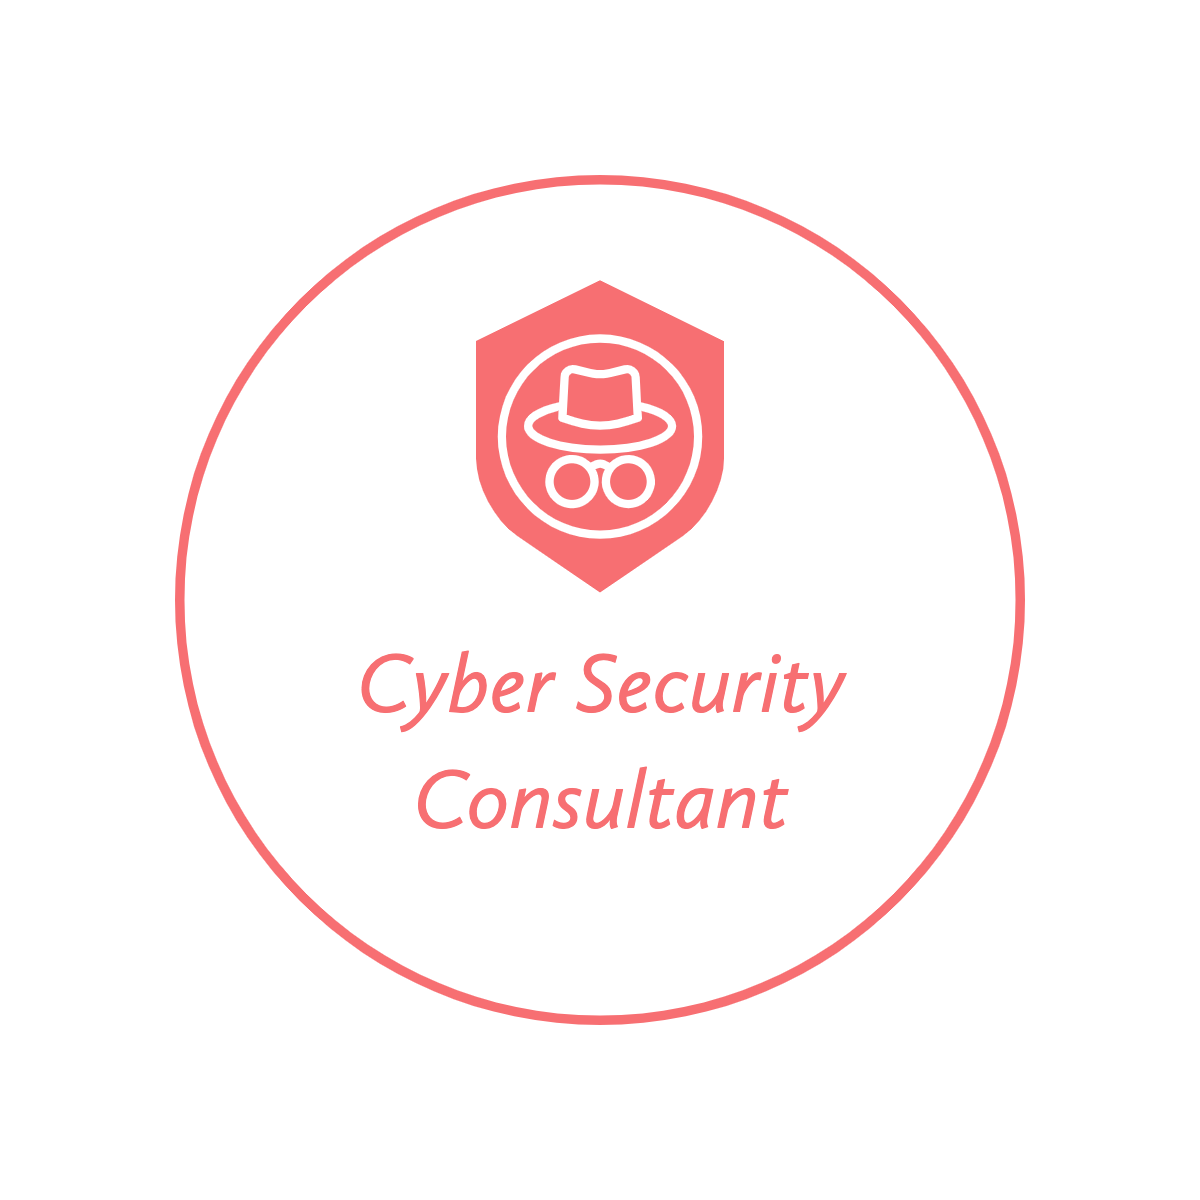 Cyber Security Consultant